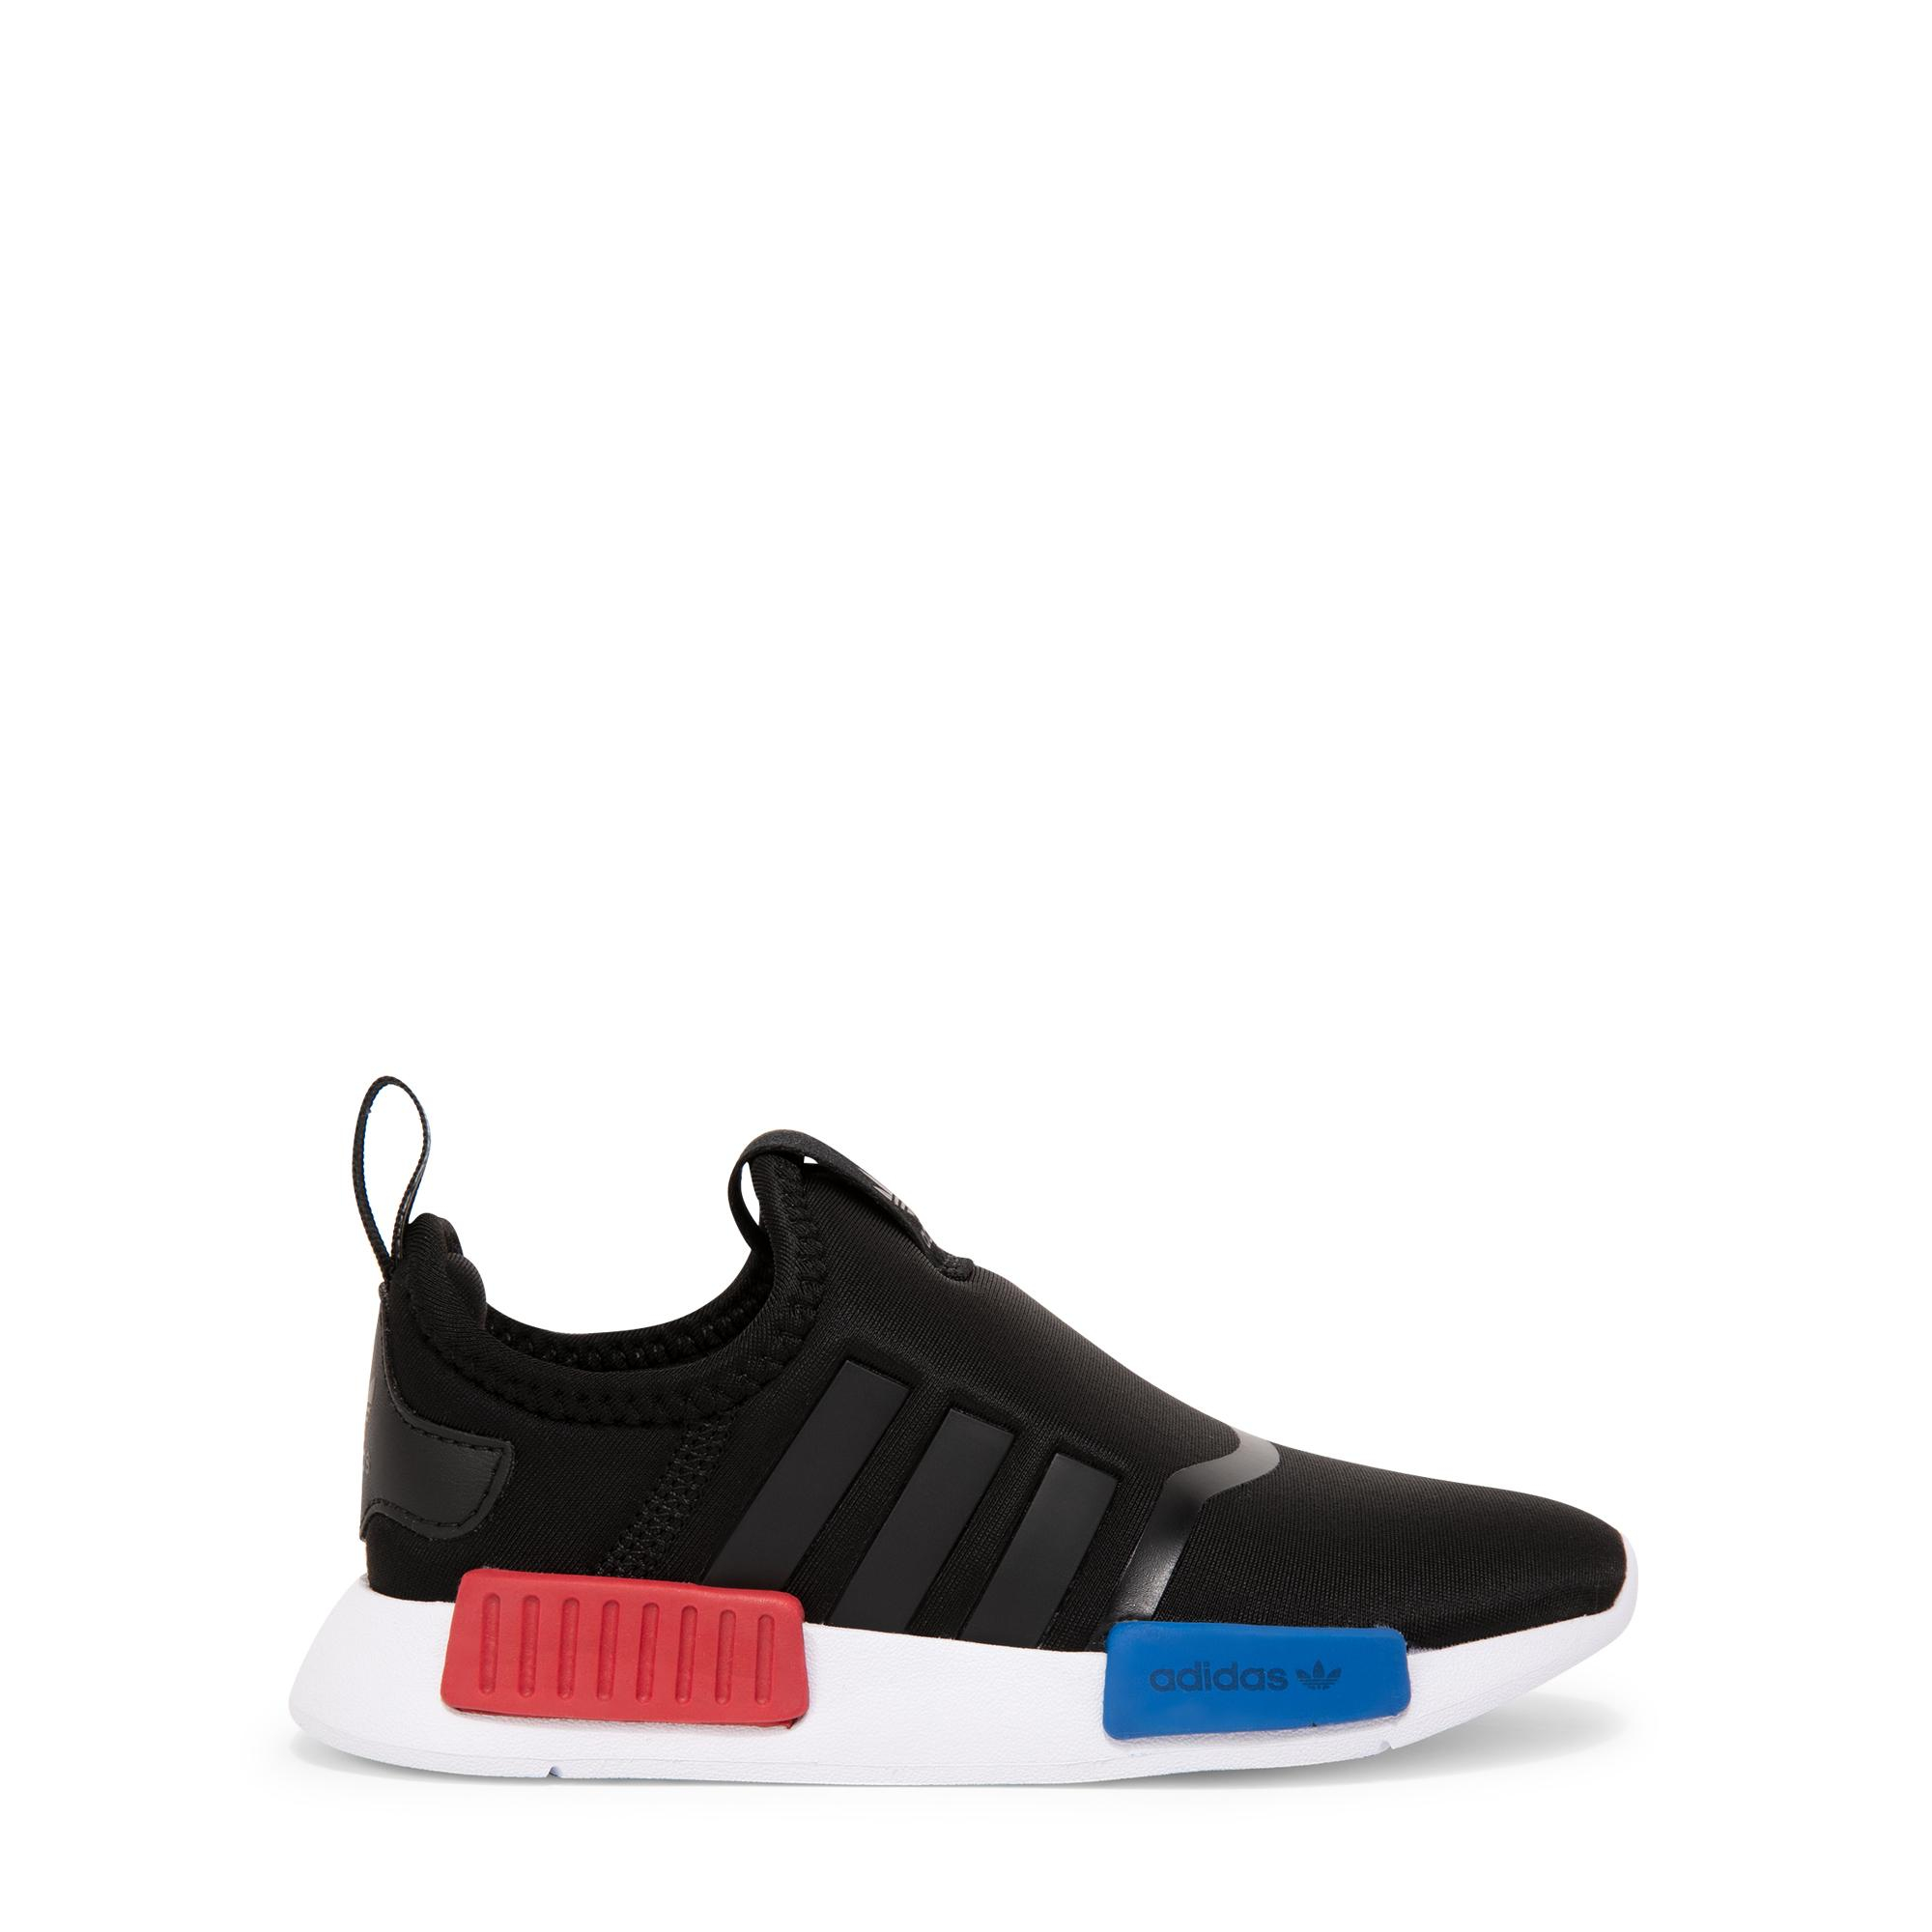 NMD 360 sneakers